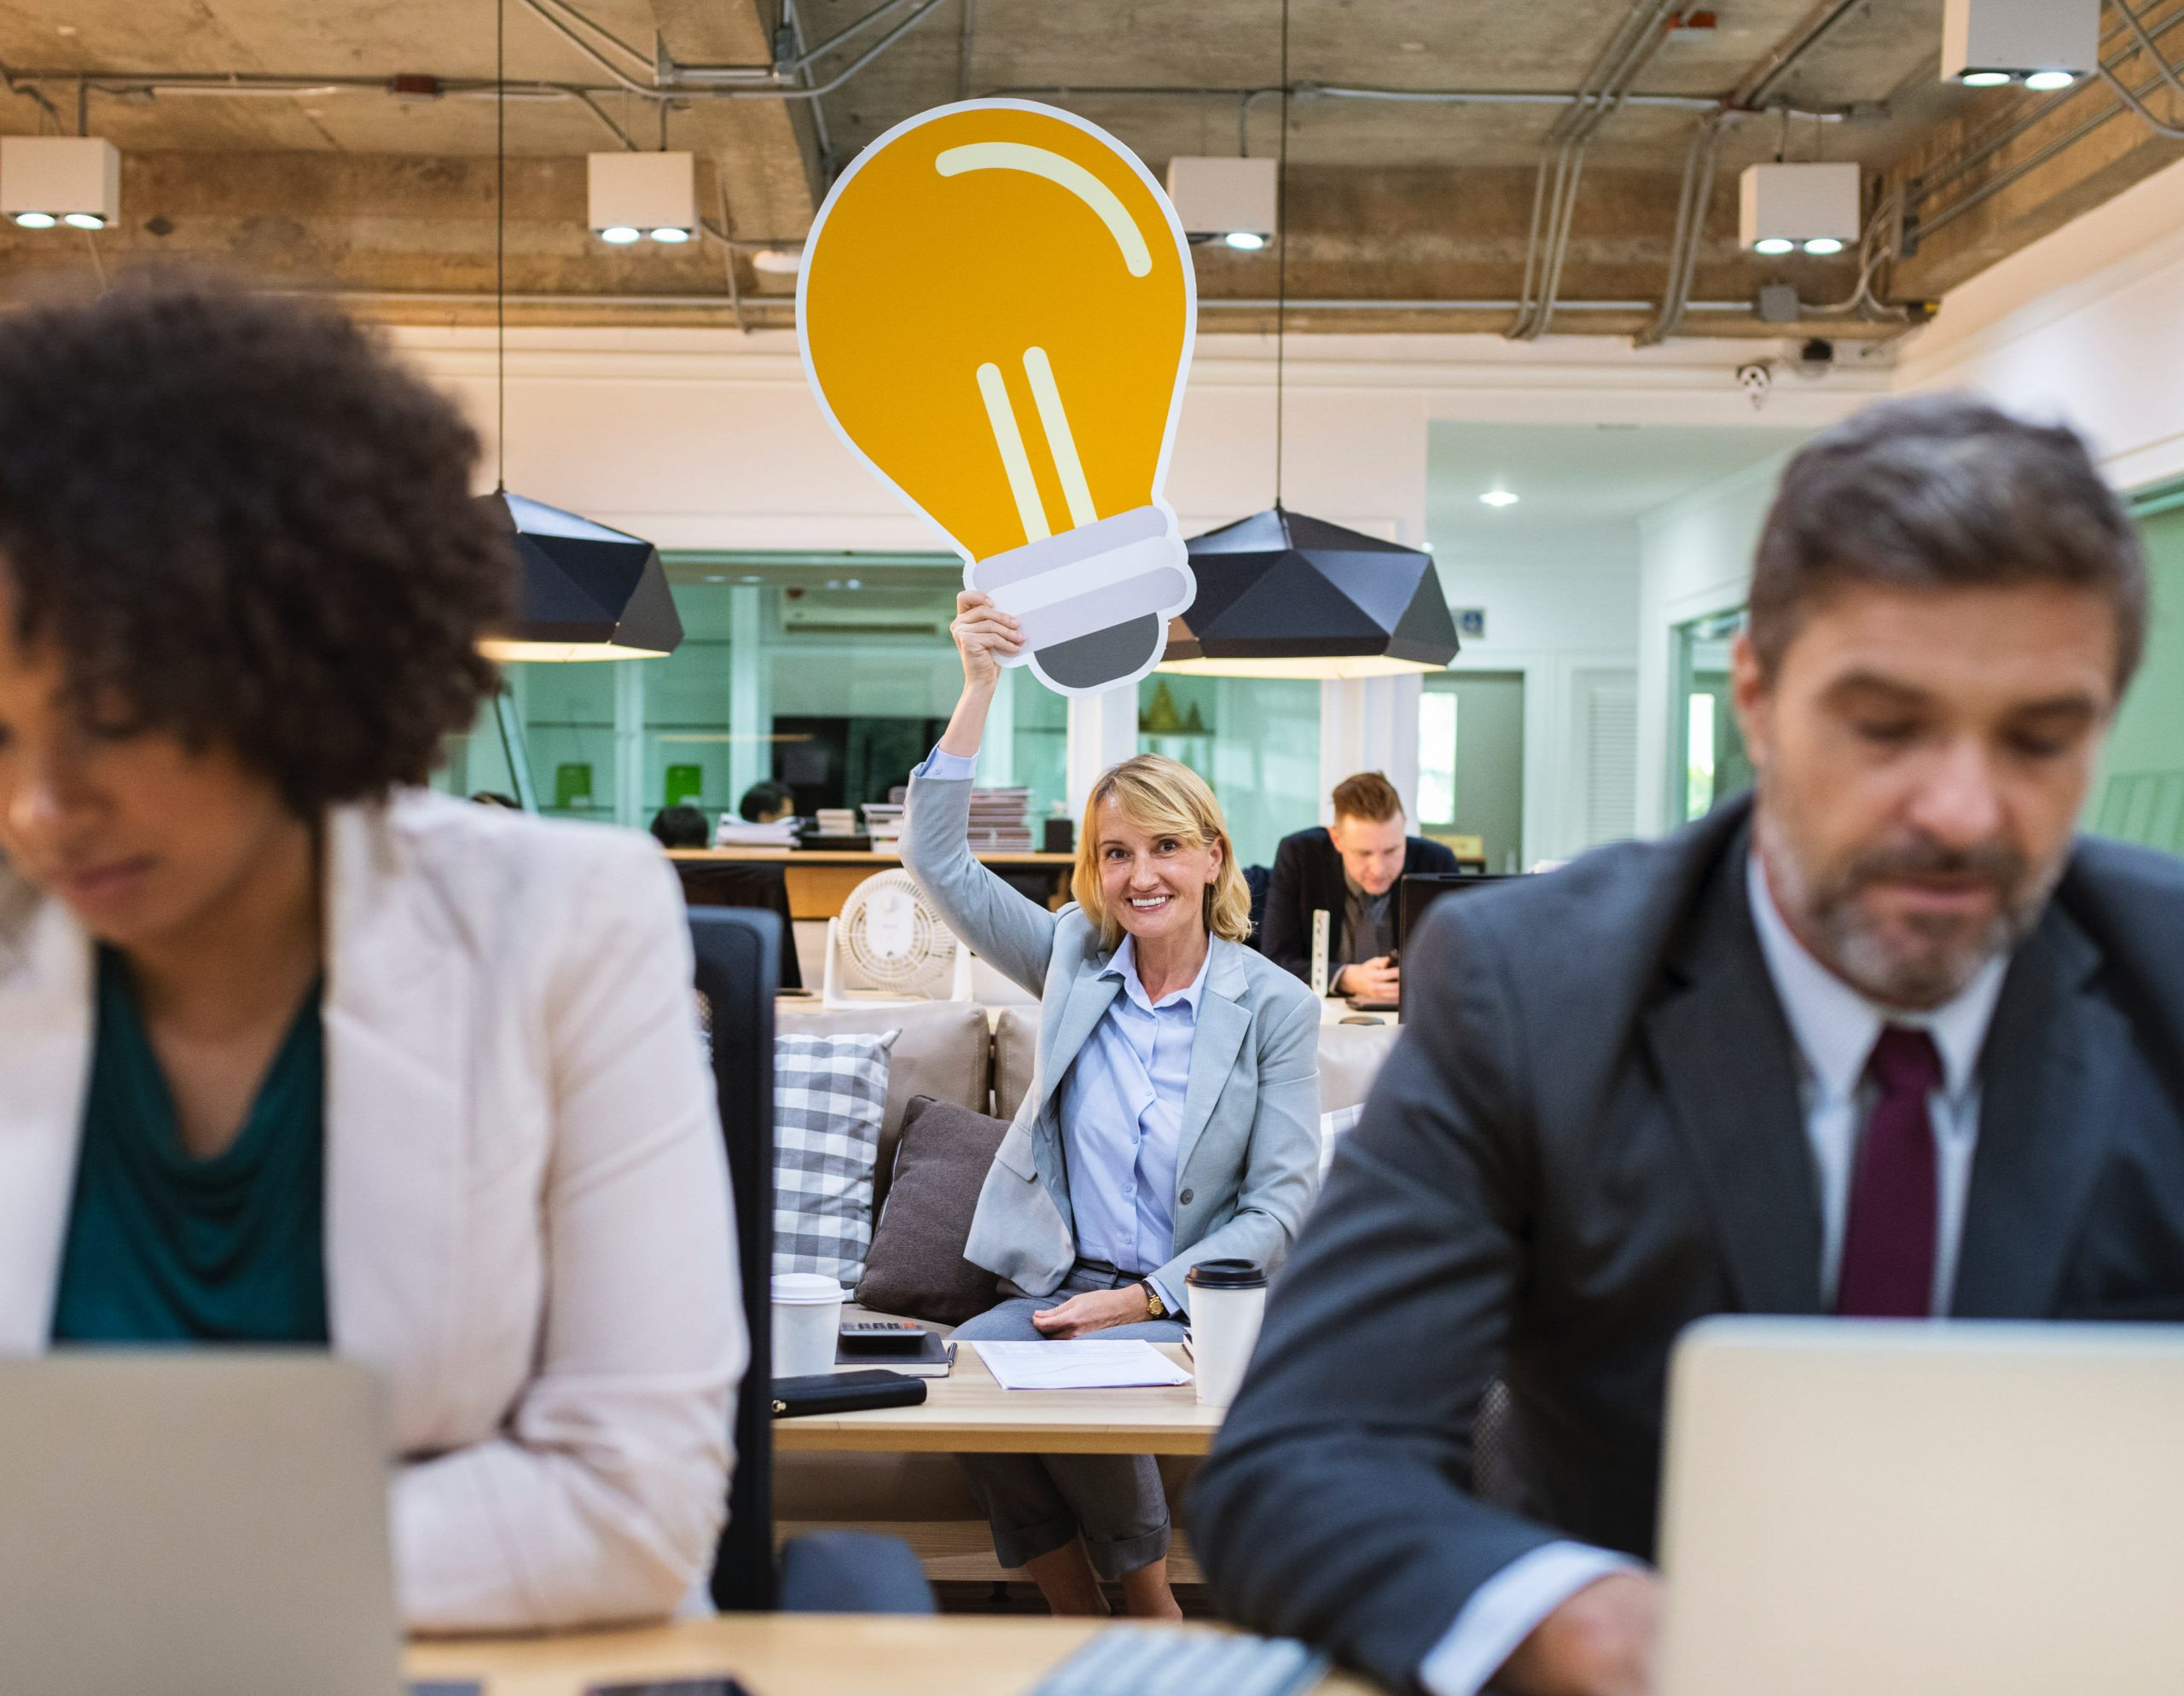 Busy business office with woman in middle holding lightbulb sign over her head.